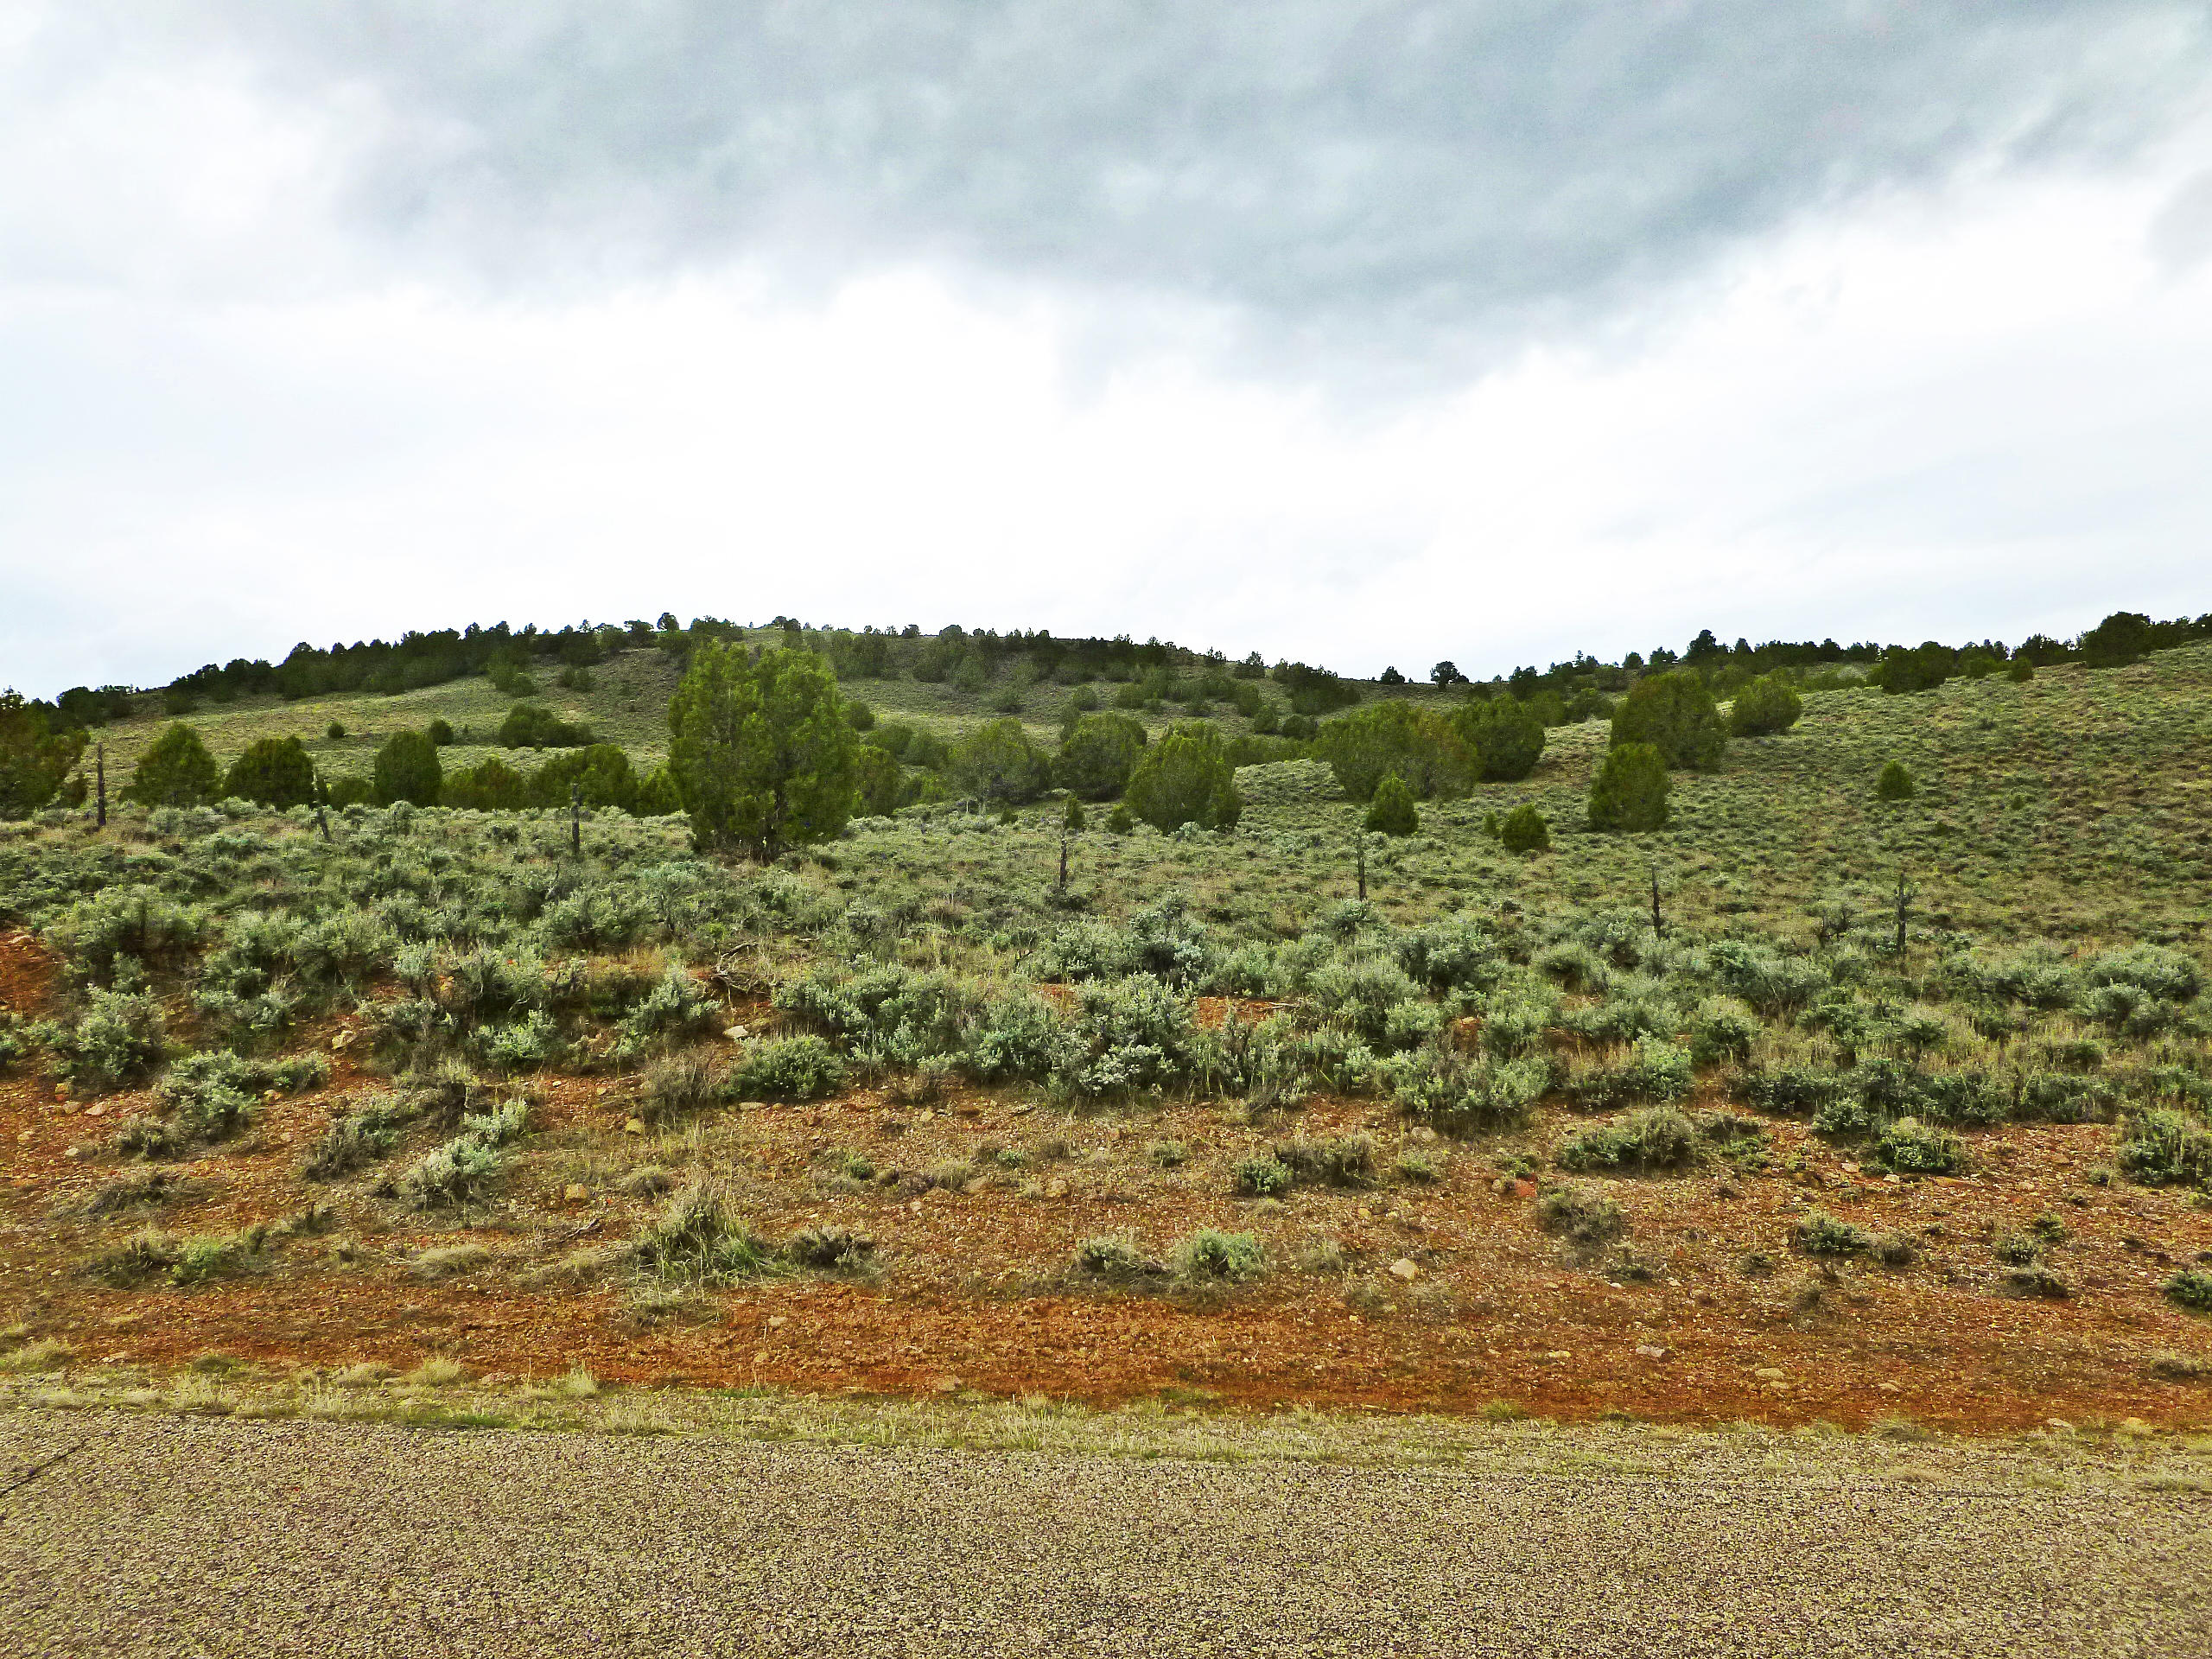 Outstanding 24.7 acre listing just off of Hwy 120 in Enterprise Utah, ,existing well with 2 Acre Ft water,gentle slope with Pinion and great views!!culvert pipe on access Rd, just a few feet of of paved Hwy 120, on the rout to Enterprise Reservoir, State water permit #71-4832 zoned OST-20 open space transitional per Washington County